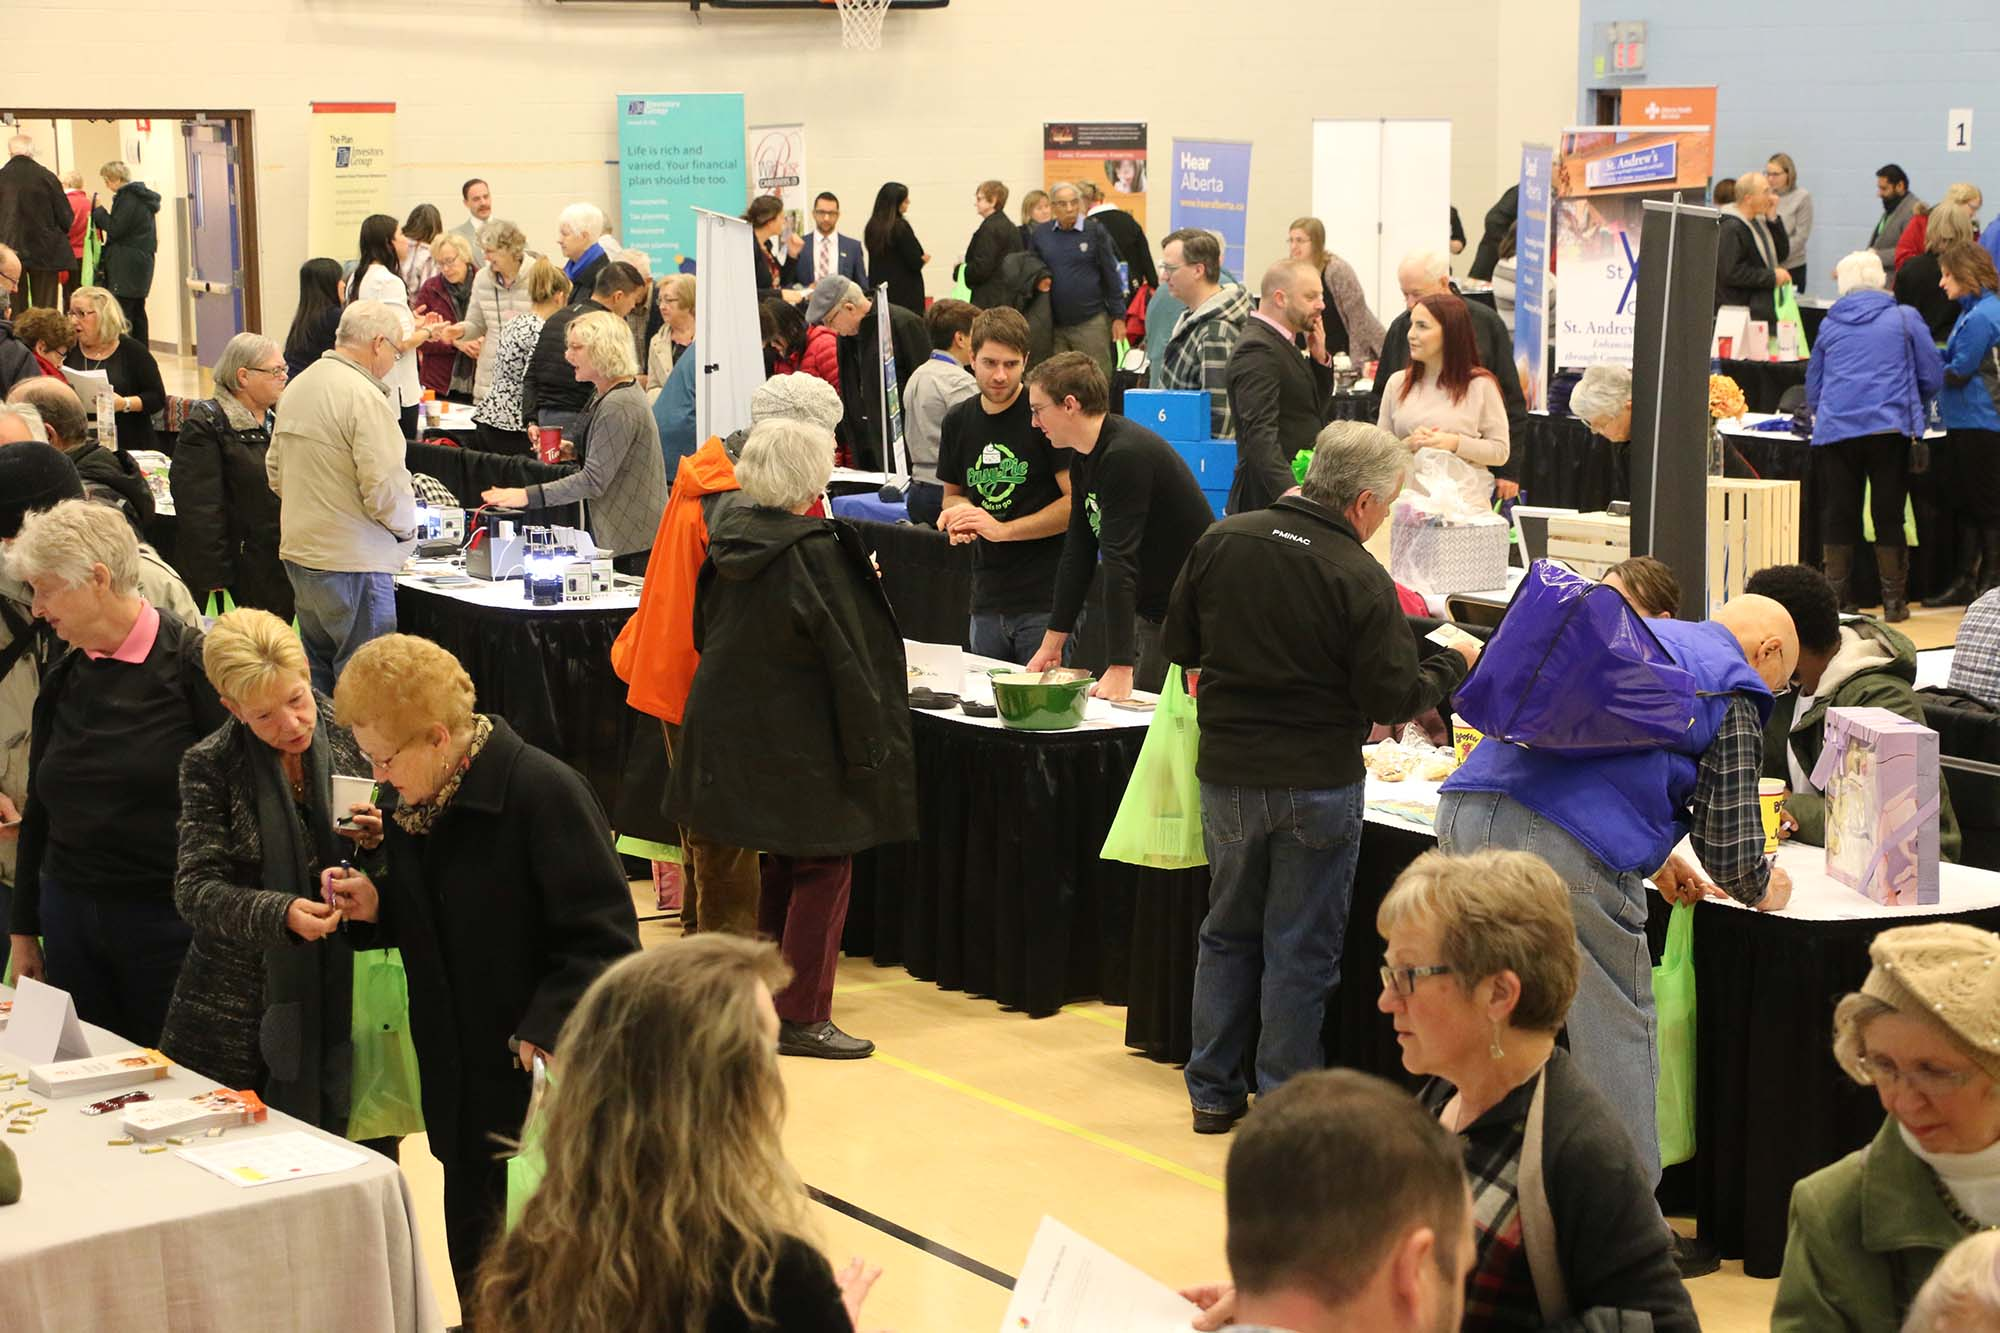 Seniors find resources at Edmonton Seniors' Health and Wellness Forum